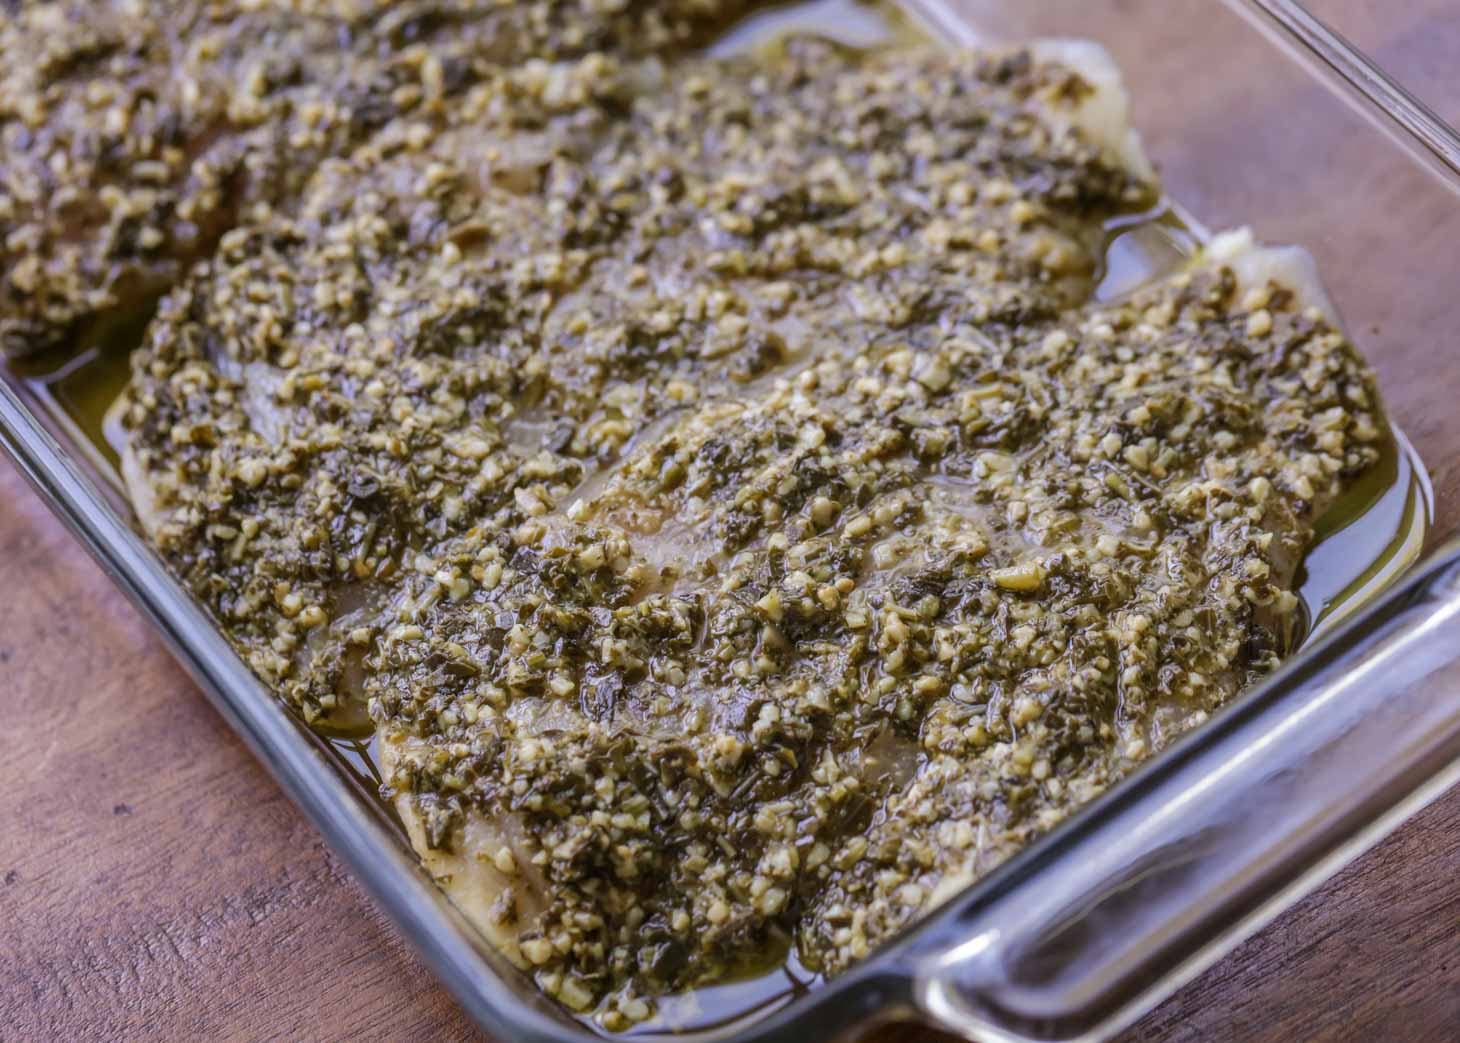 chicken breasts covered with basil pesto in a baking dish